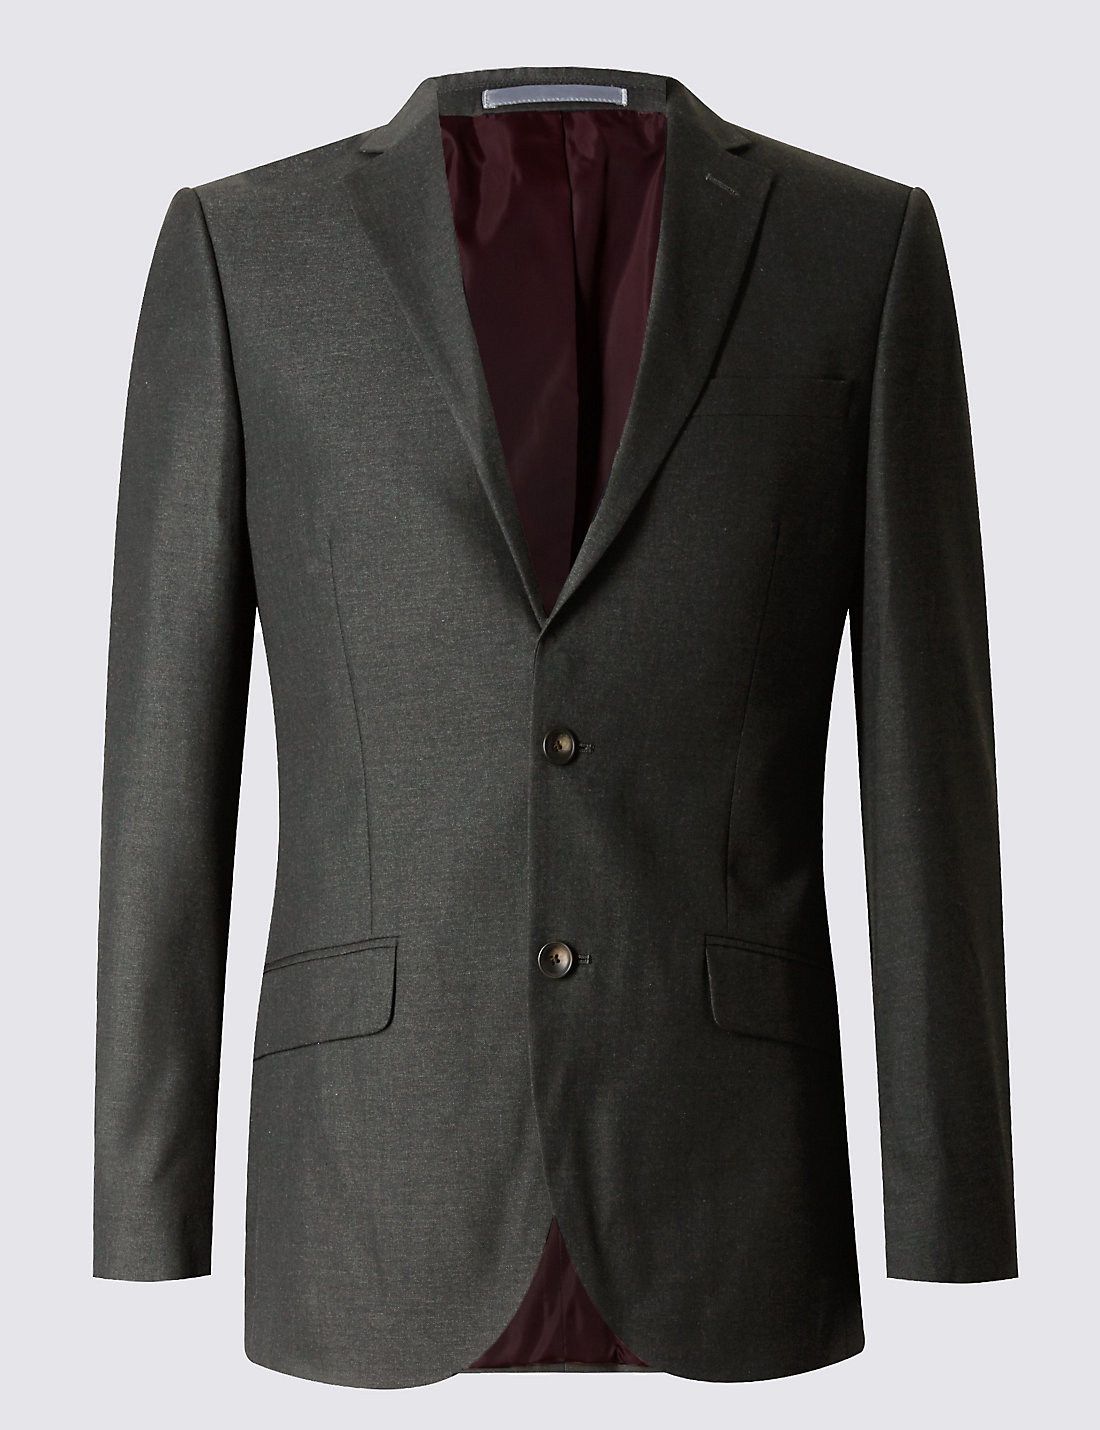 Charcoal tailored fit suit ms charcoal tailored fit suit izmirmasajfo